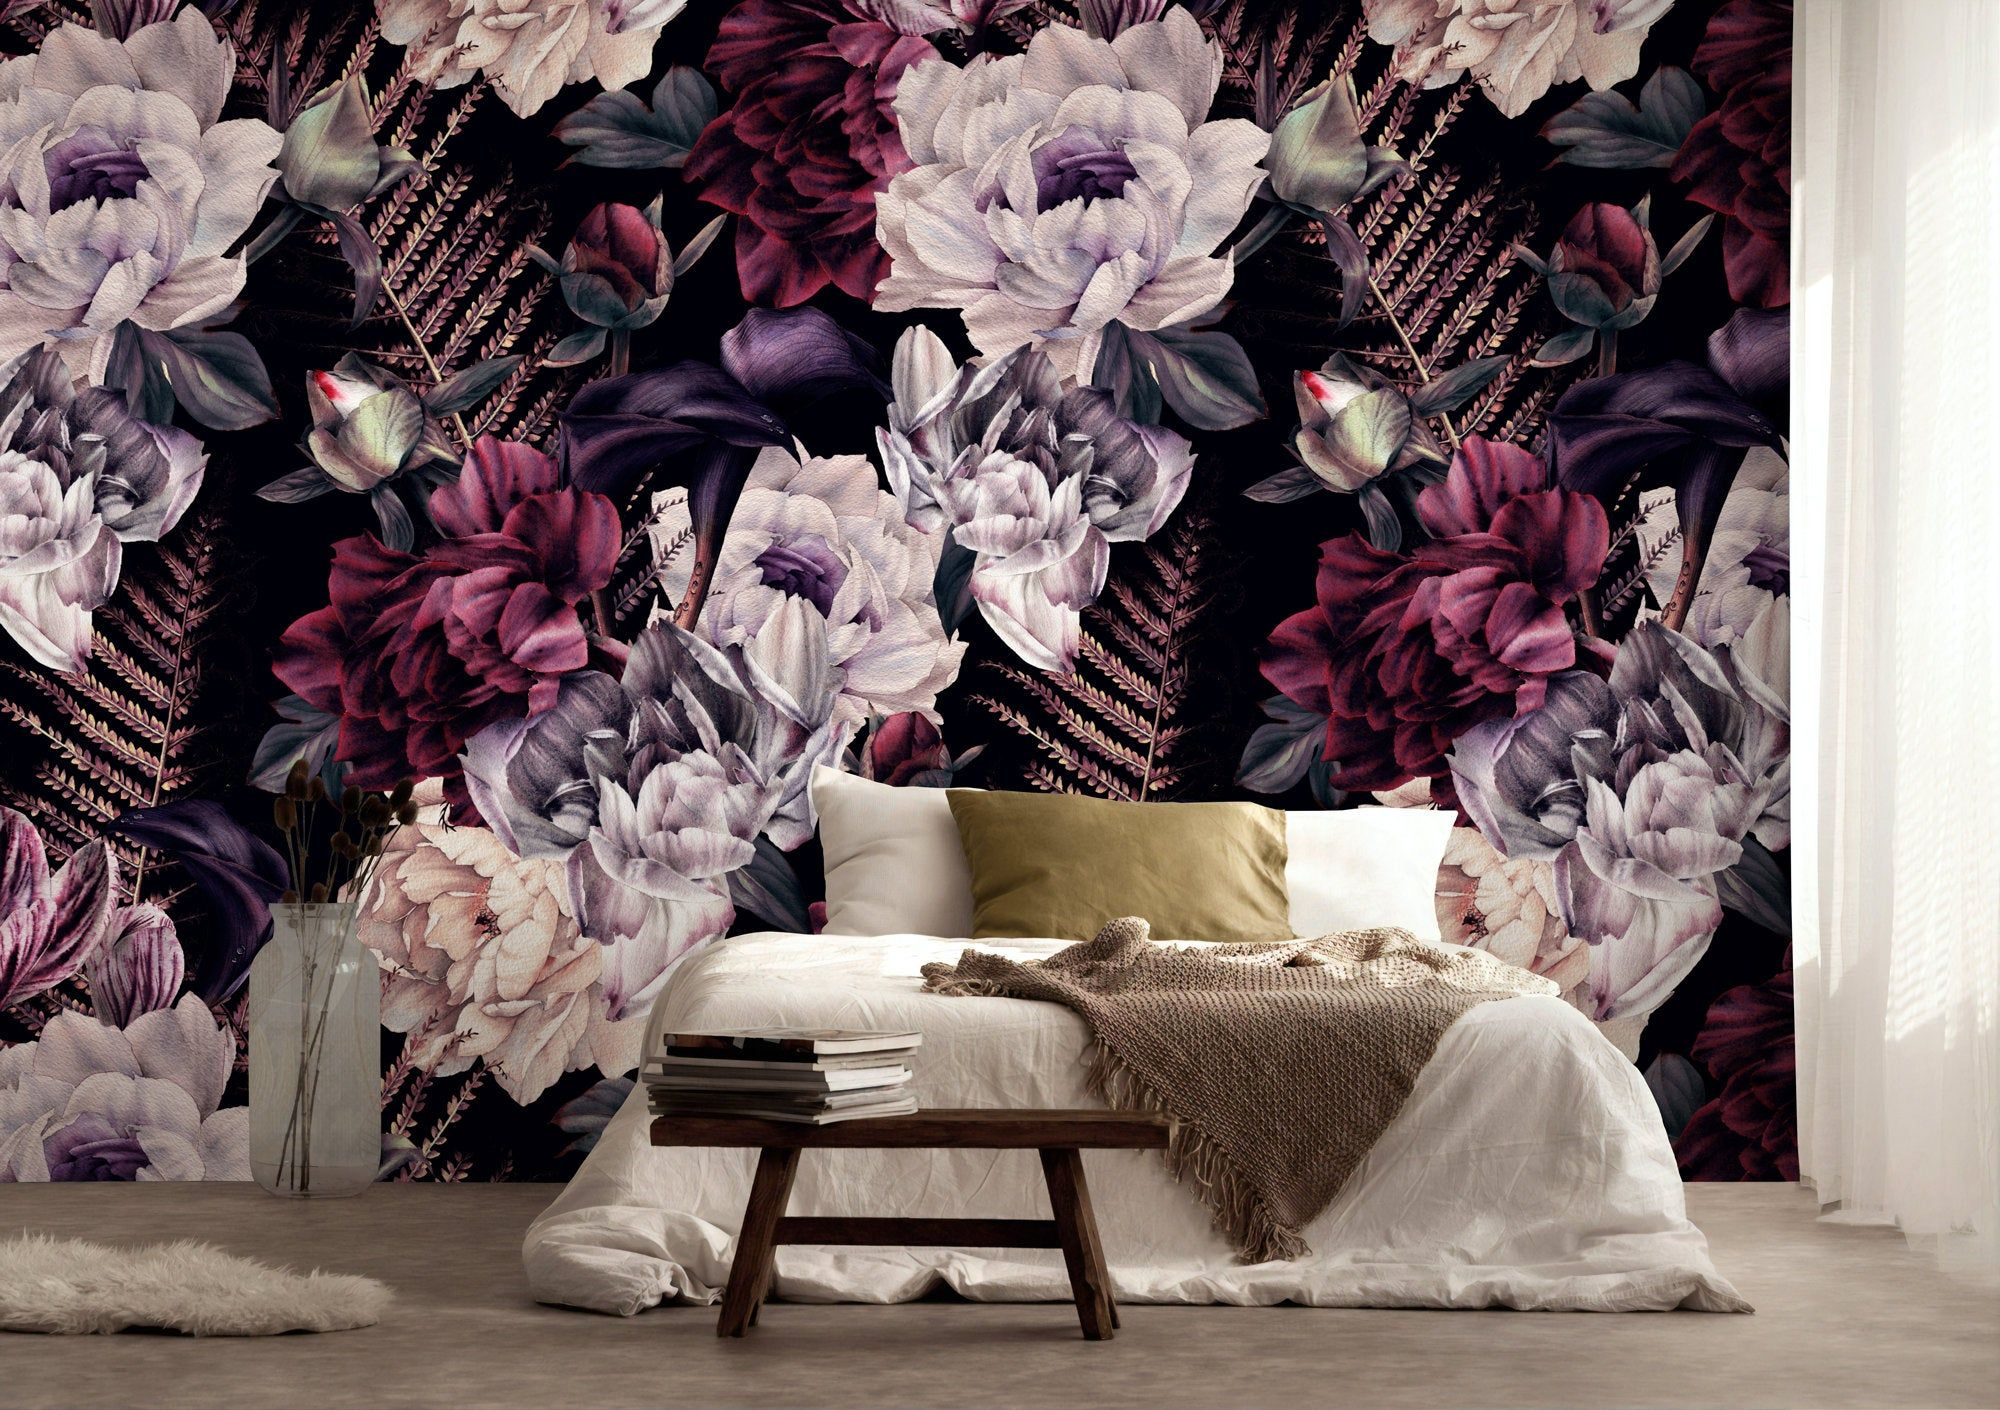 Dark Floral Wallpaper Removable Peel And Stick Self Adhesive Etsy Floral Wallpaper Dark Floral Peel And Stick Wallpaper